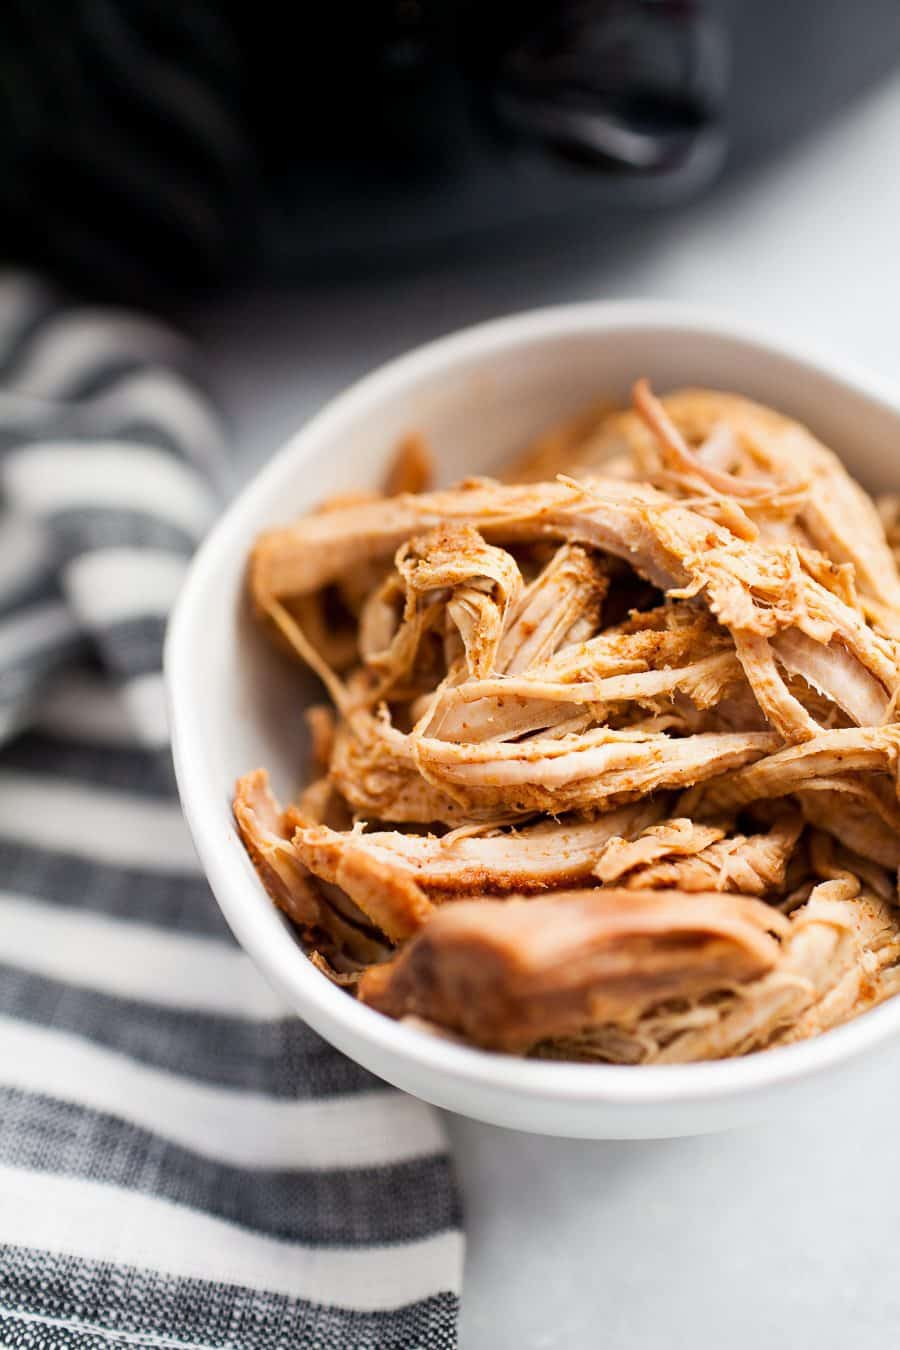 Slow cooker pulled pork is a classic! If you're looking for a healthier, refined sugar free version to make your entire family, this is it. Made with coconut sugar, spices, chicken broth and a dash of soy sauce, this?Refined Sugar Free Slow Cooker Pulled Pork can be thrown in the slow cooker in the morning and enjoyed with the whole family for dinner. This recipe also makes tons of leftovers for enjoying a second or third time around!